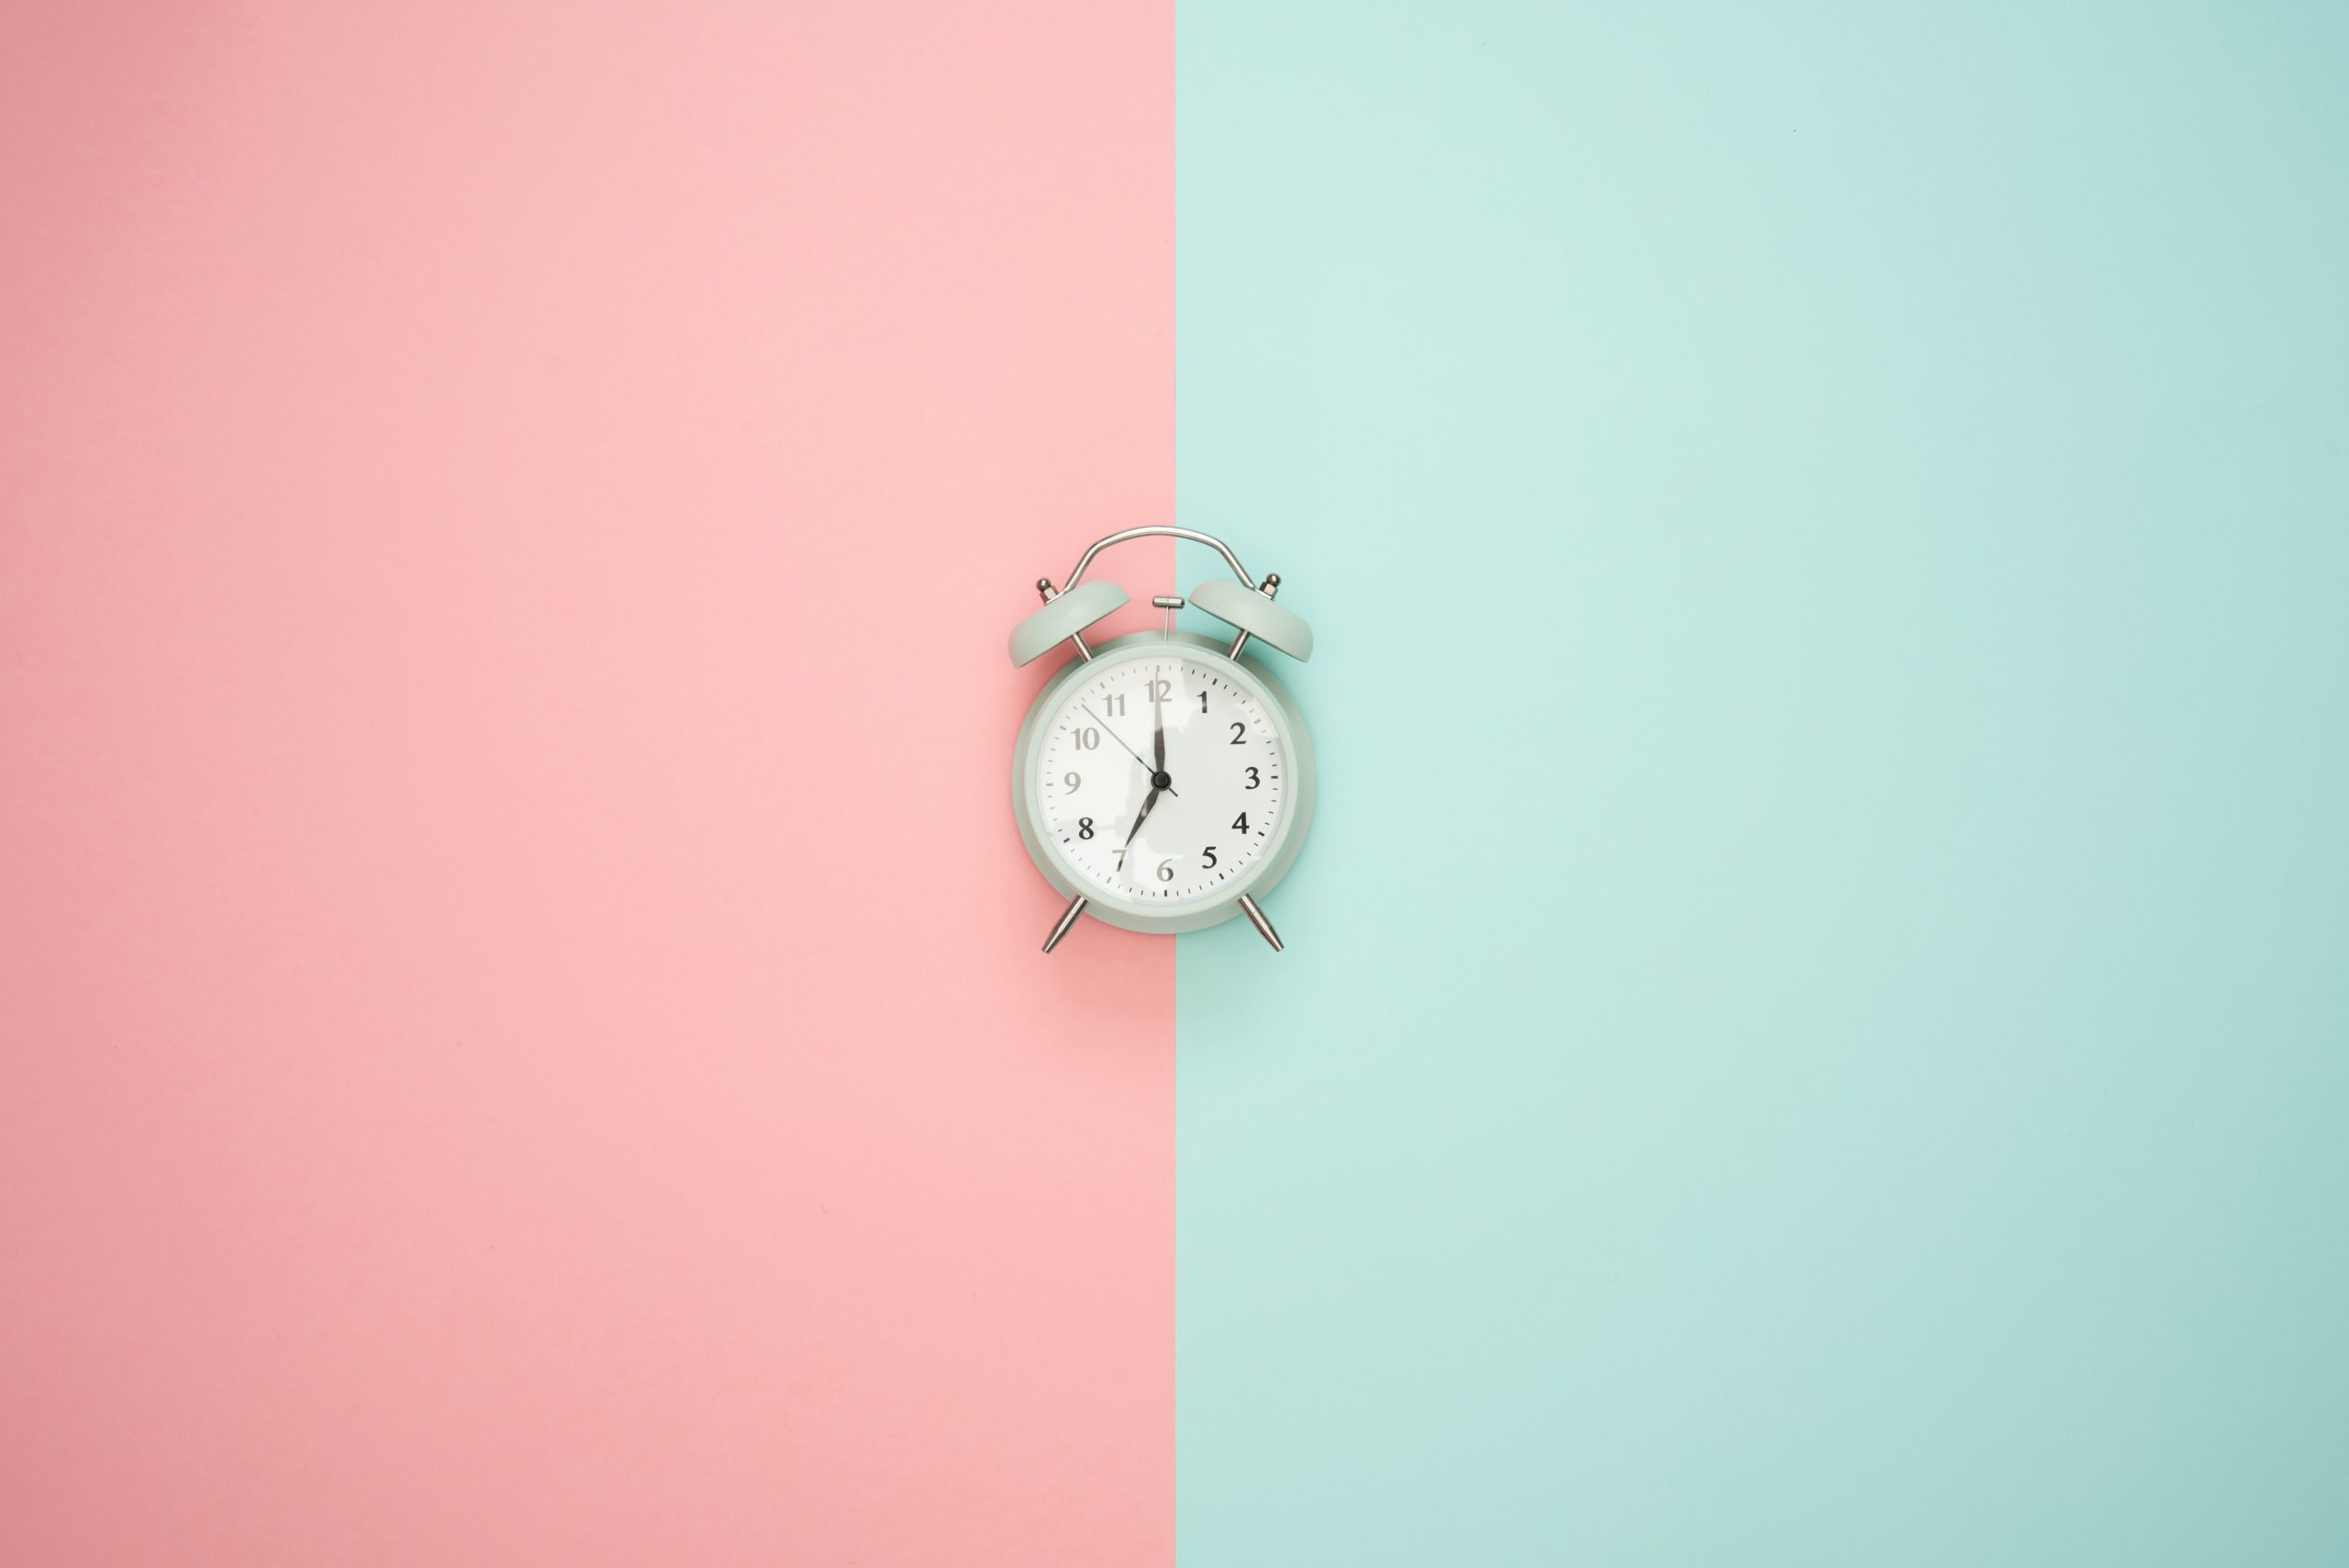 An alarm clock set against a pink and green backdrop